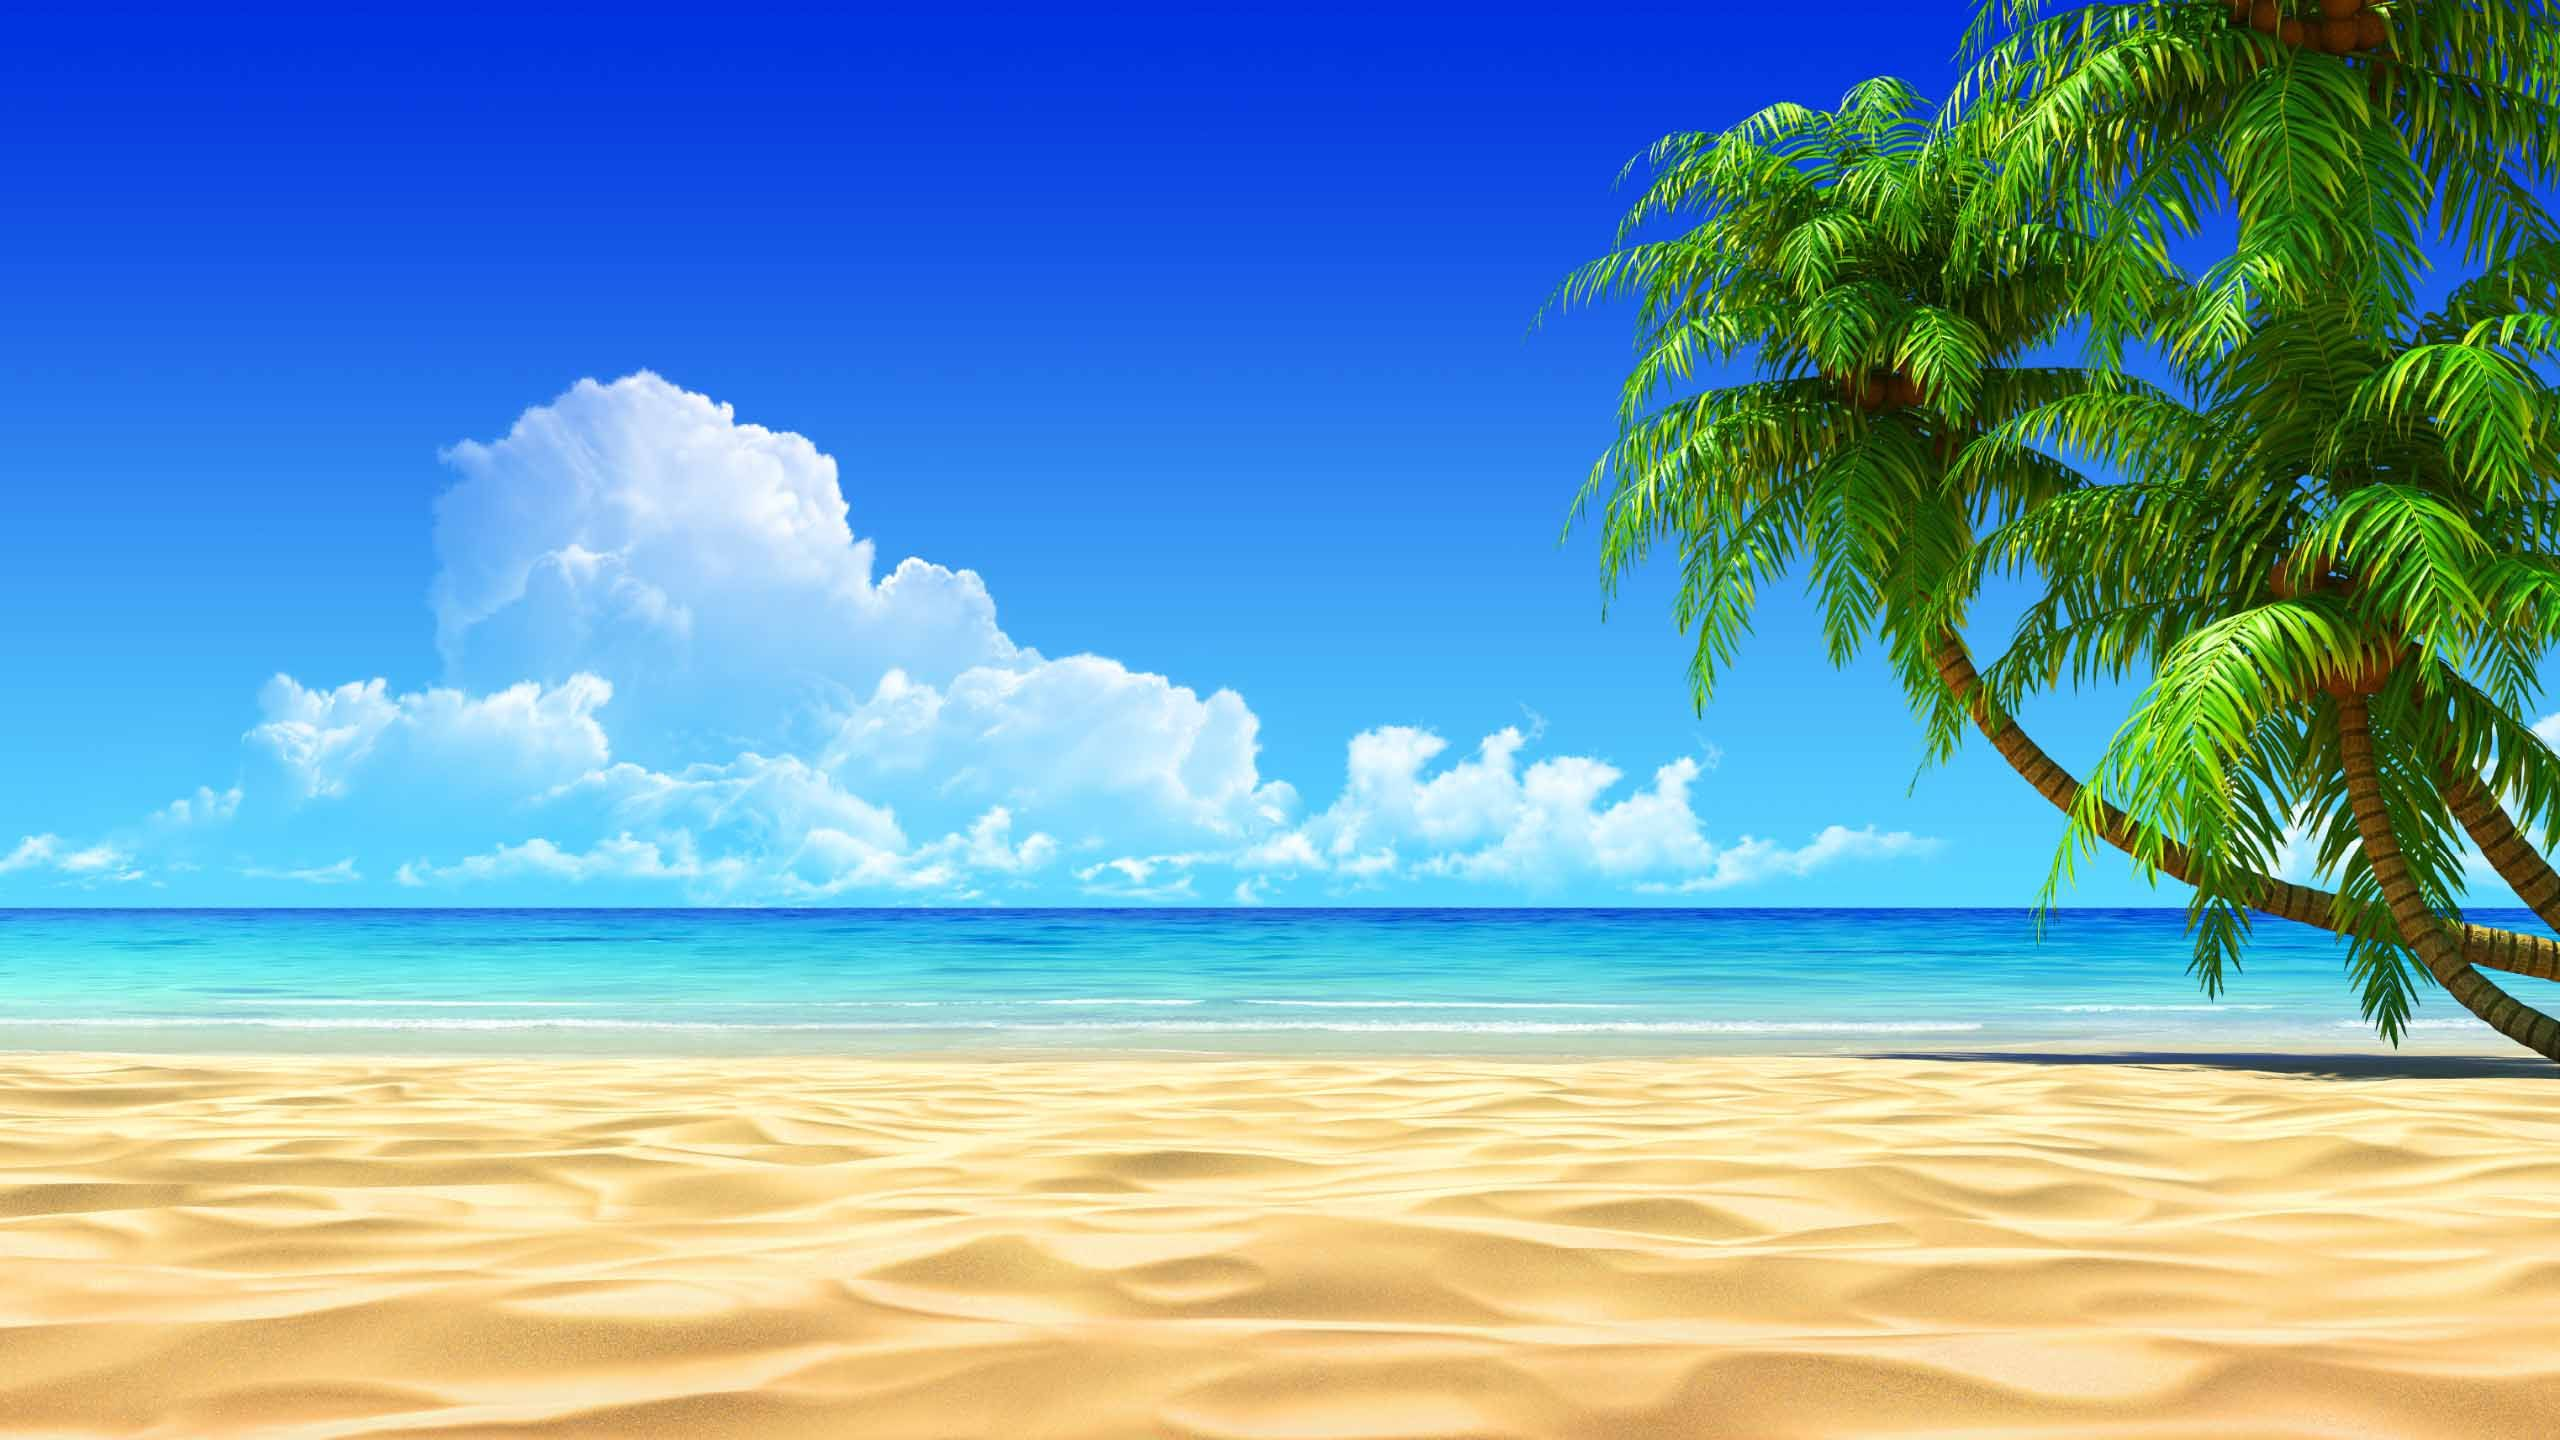 Hd Tropical Island Beach Paradise Wallpapers And Backgrounds: Pin By Masturo Wandes On Free HD Wallpapers In 2019